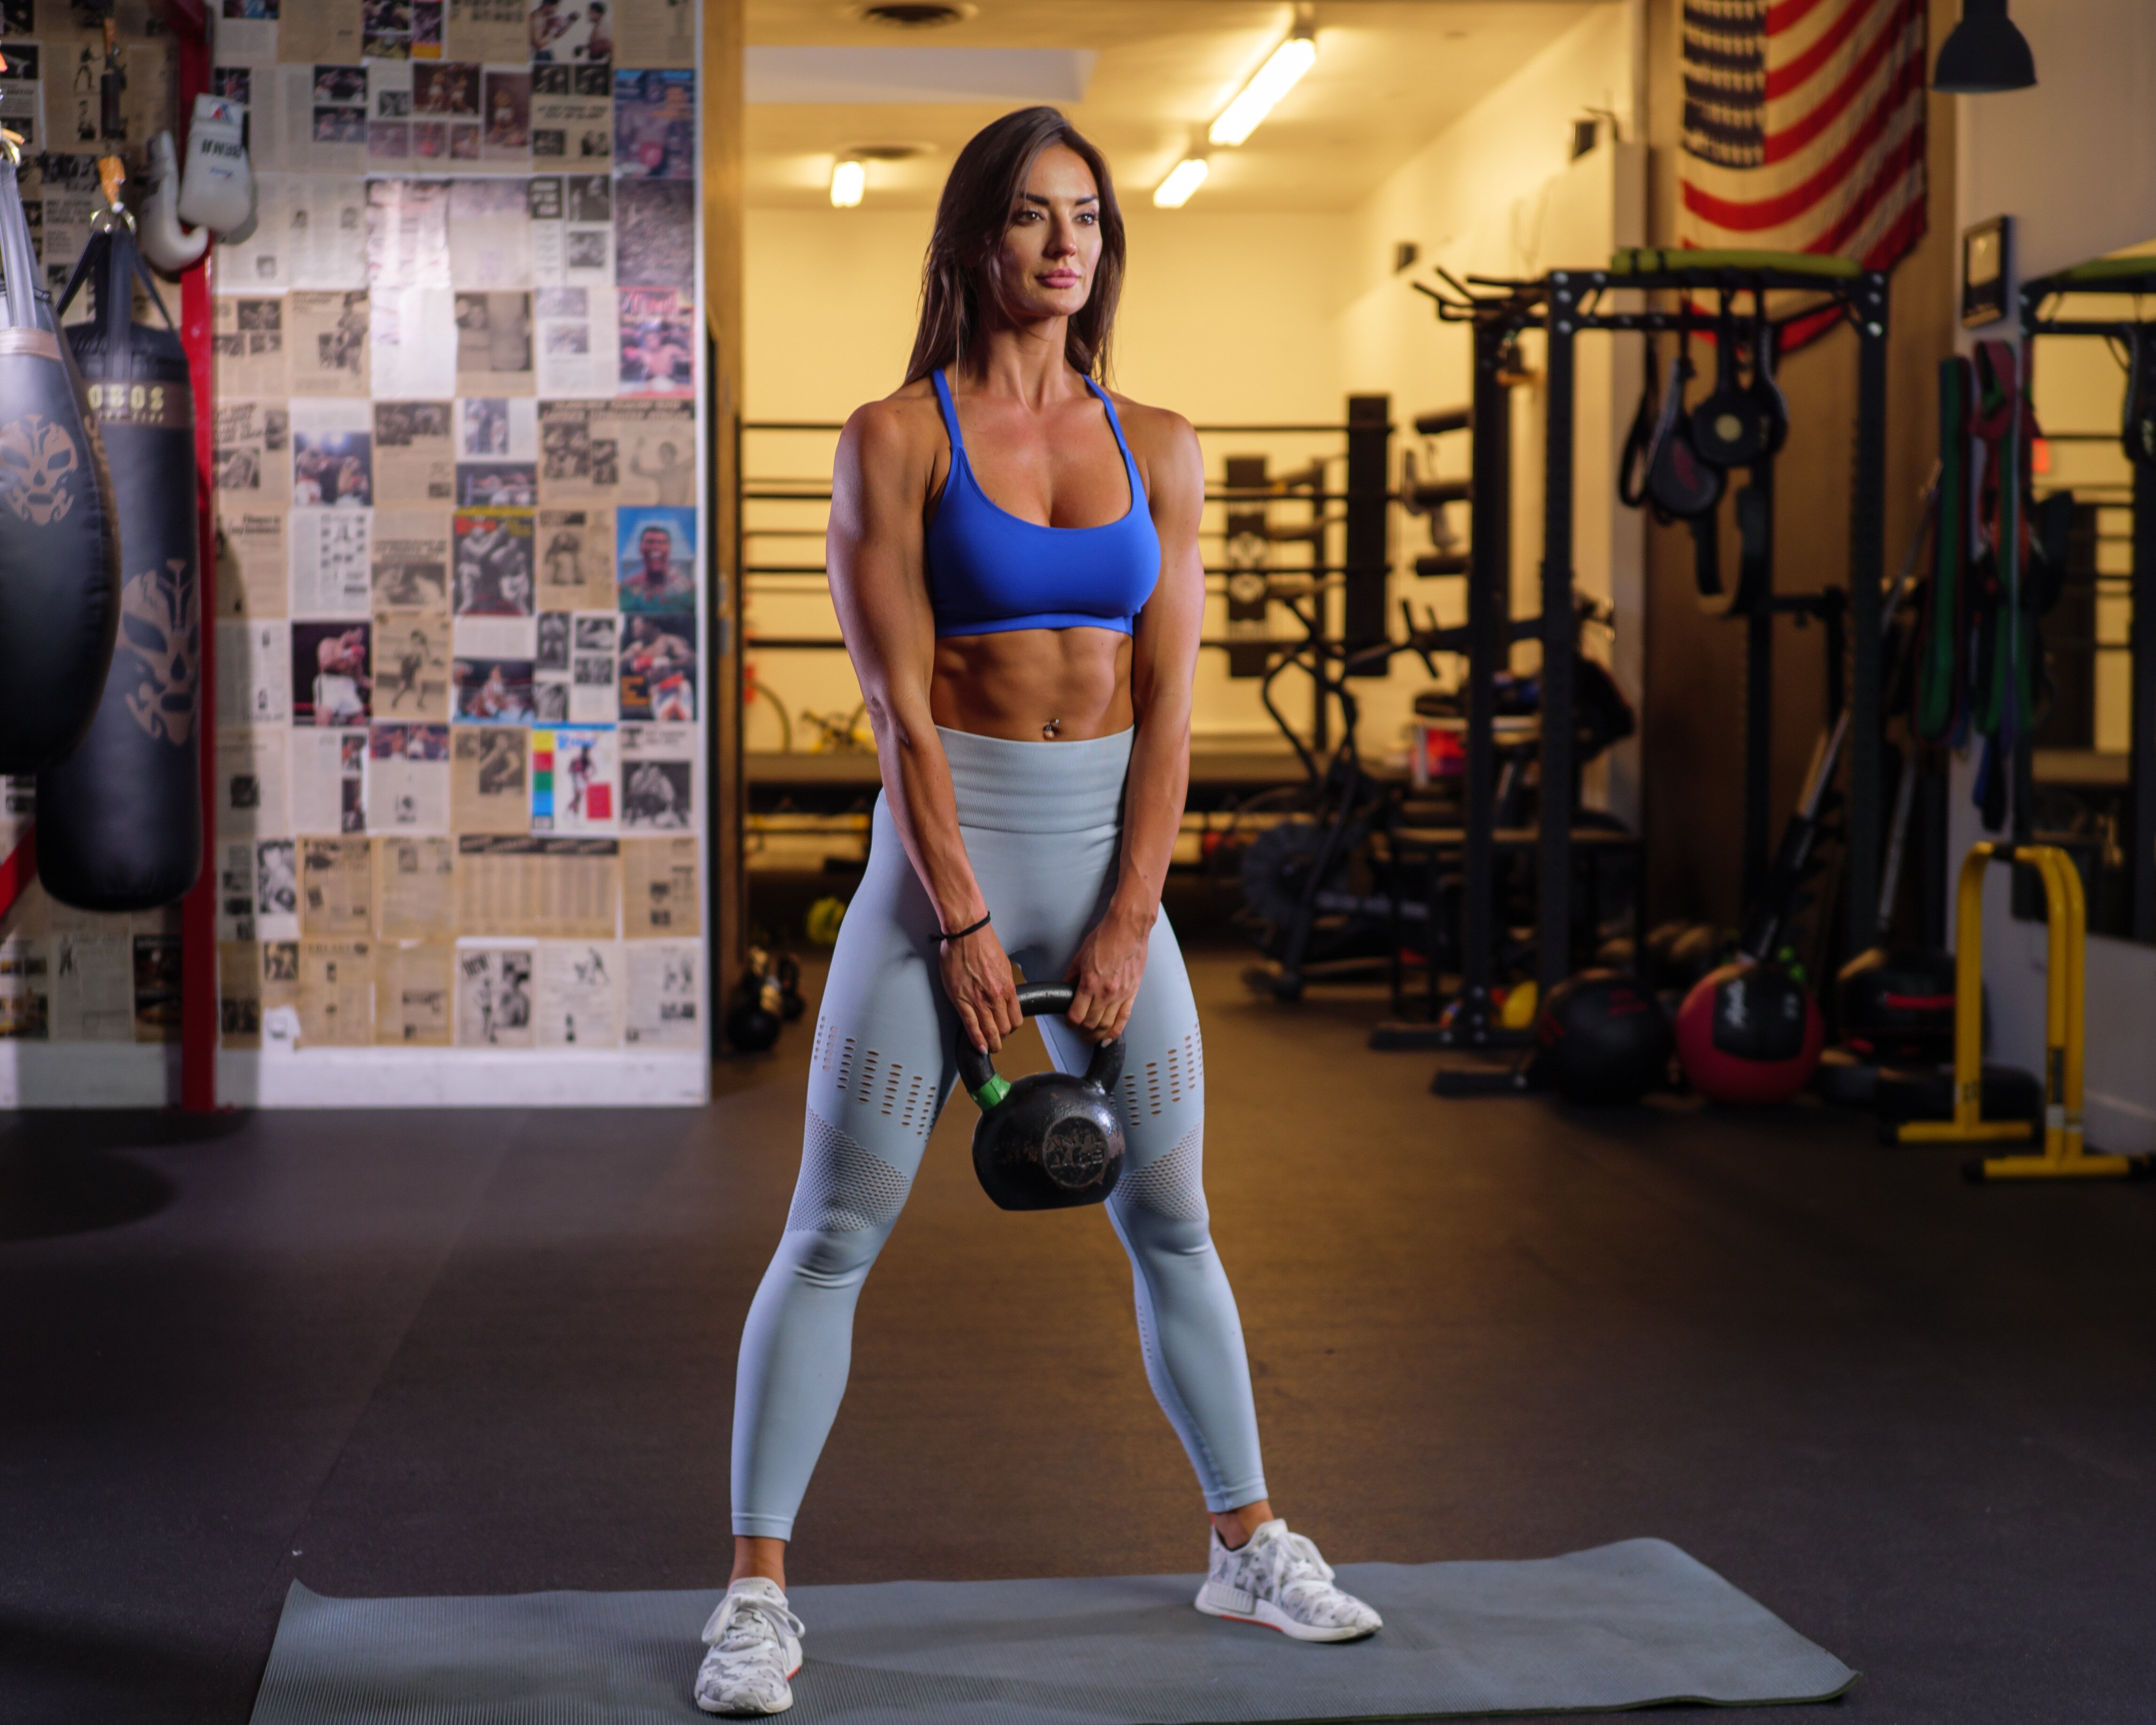 Whitney Johns in gym